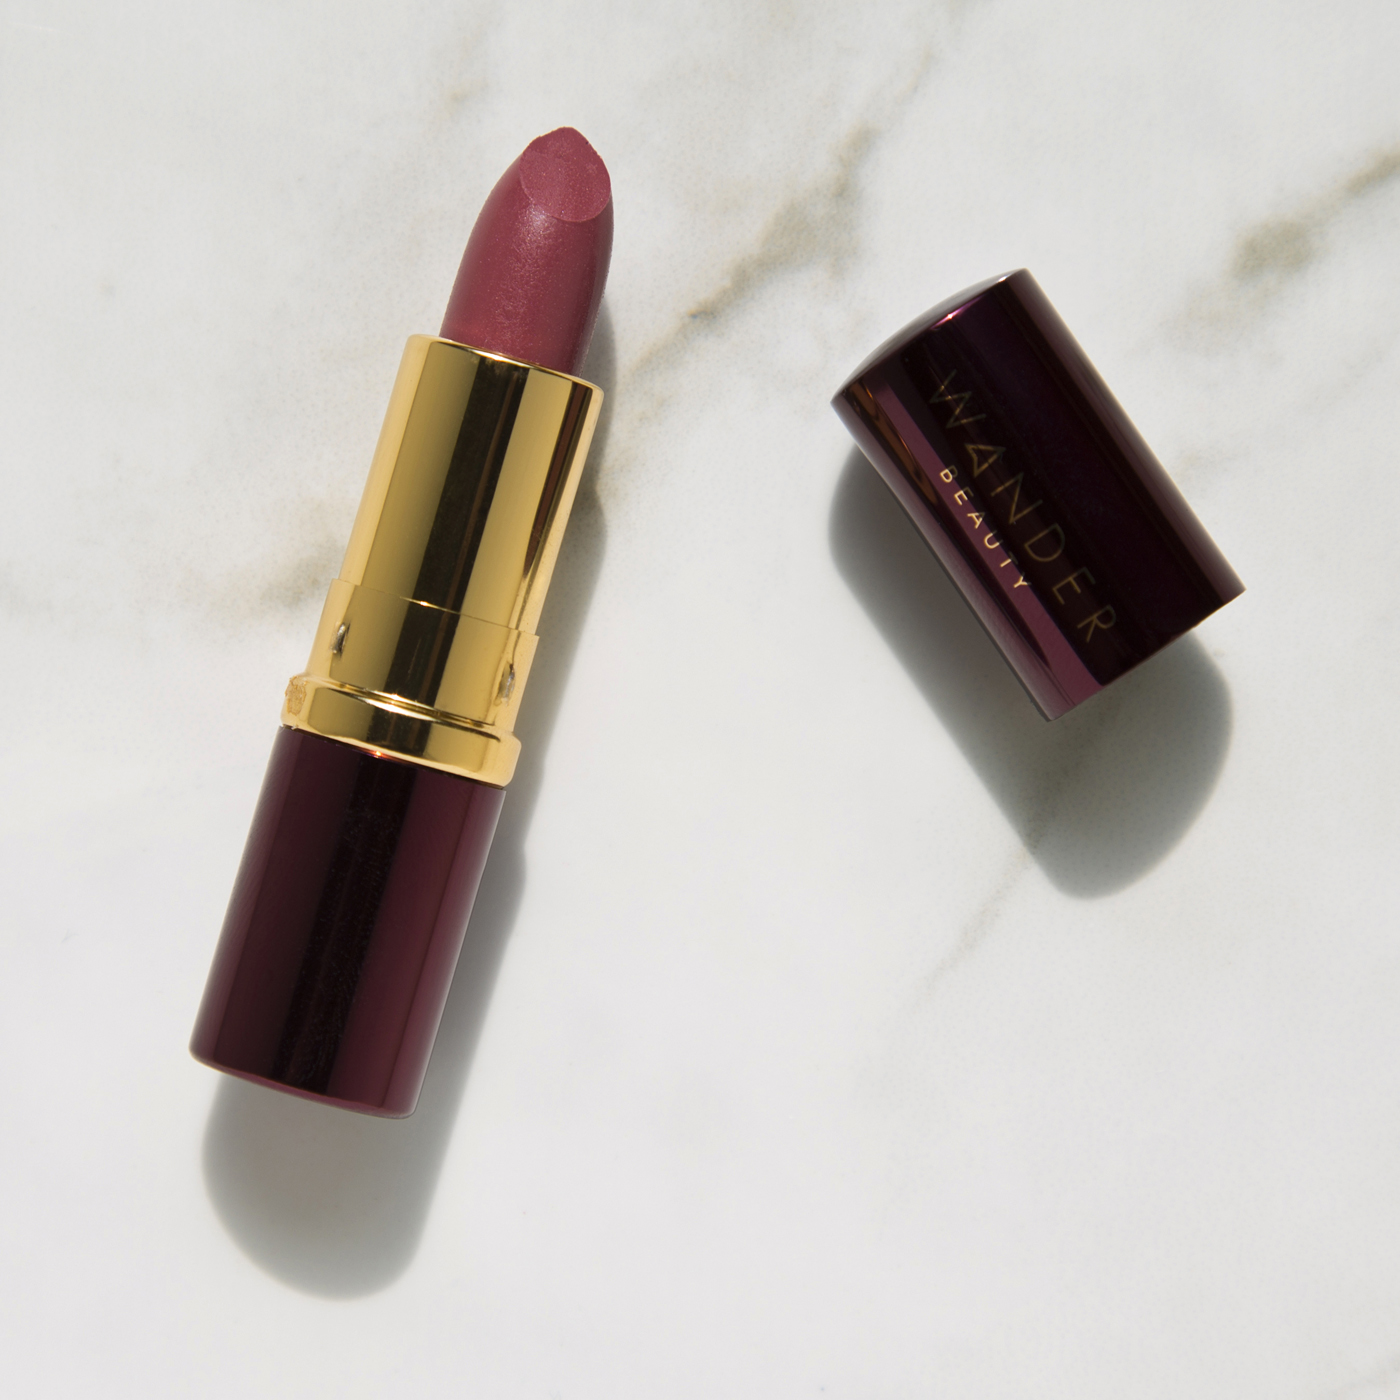 Wander Beauty Lipstick in Barely There